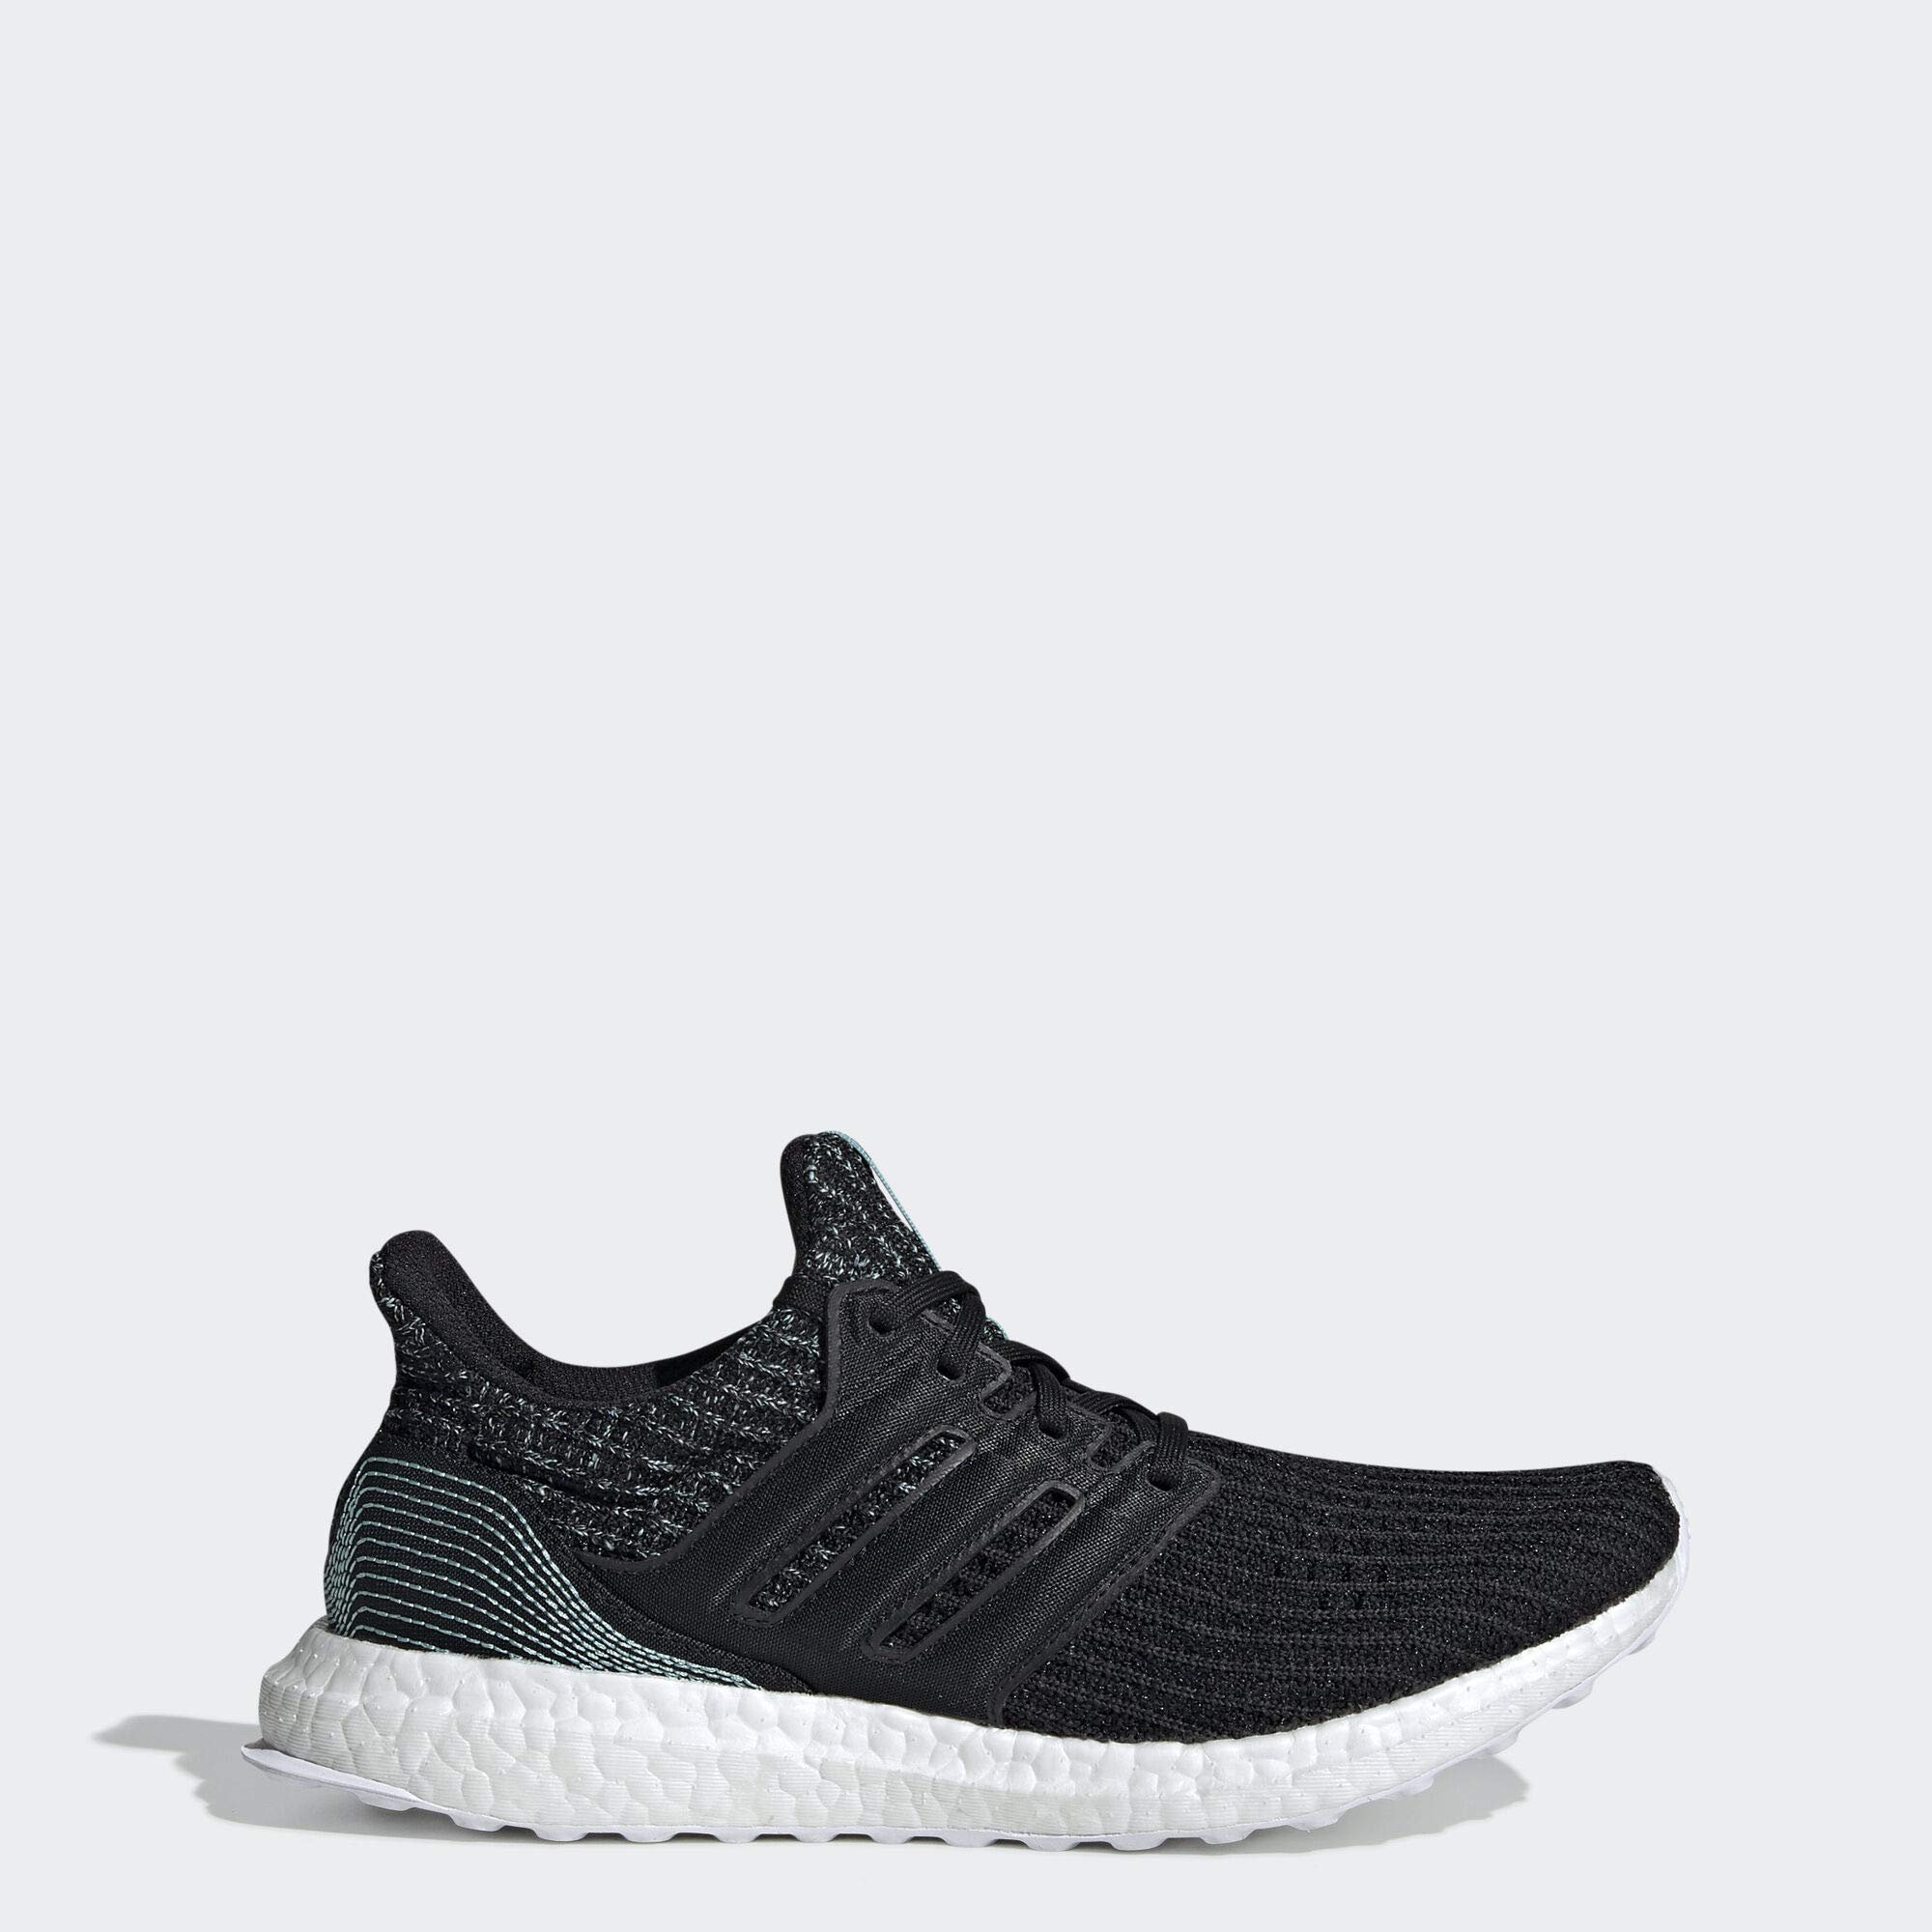 adidas Women's Ultraboost Parley, Core Black/Cloud White, 7.5 M US by adidas